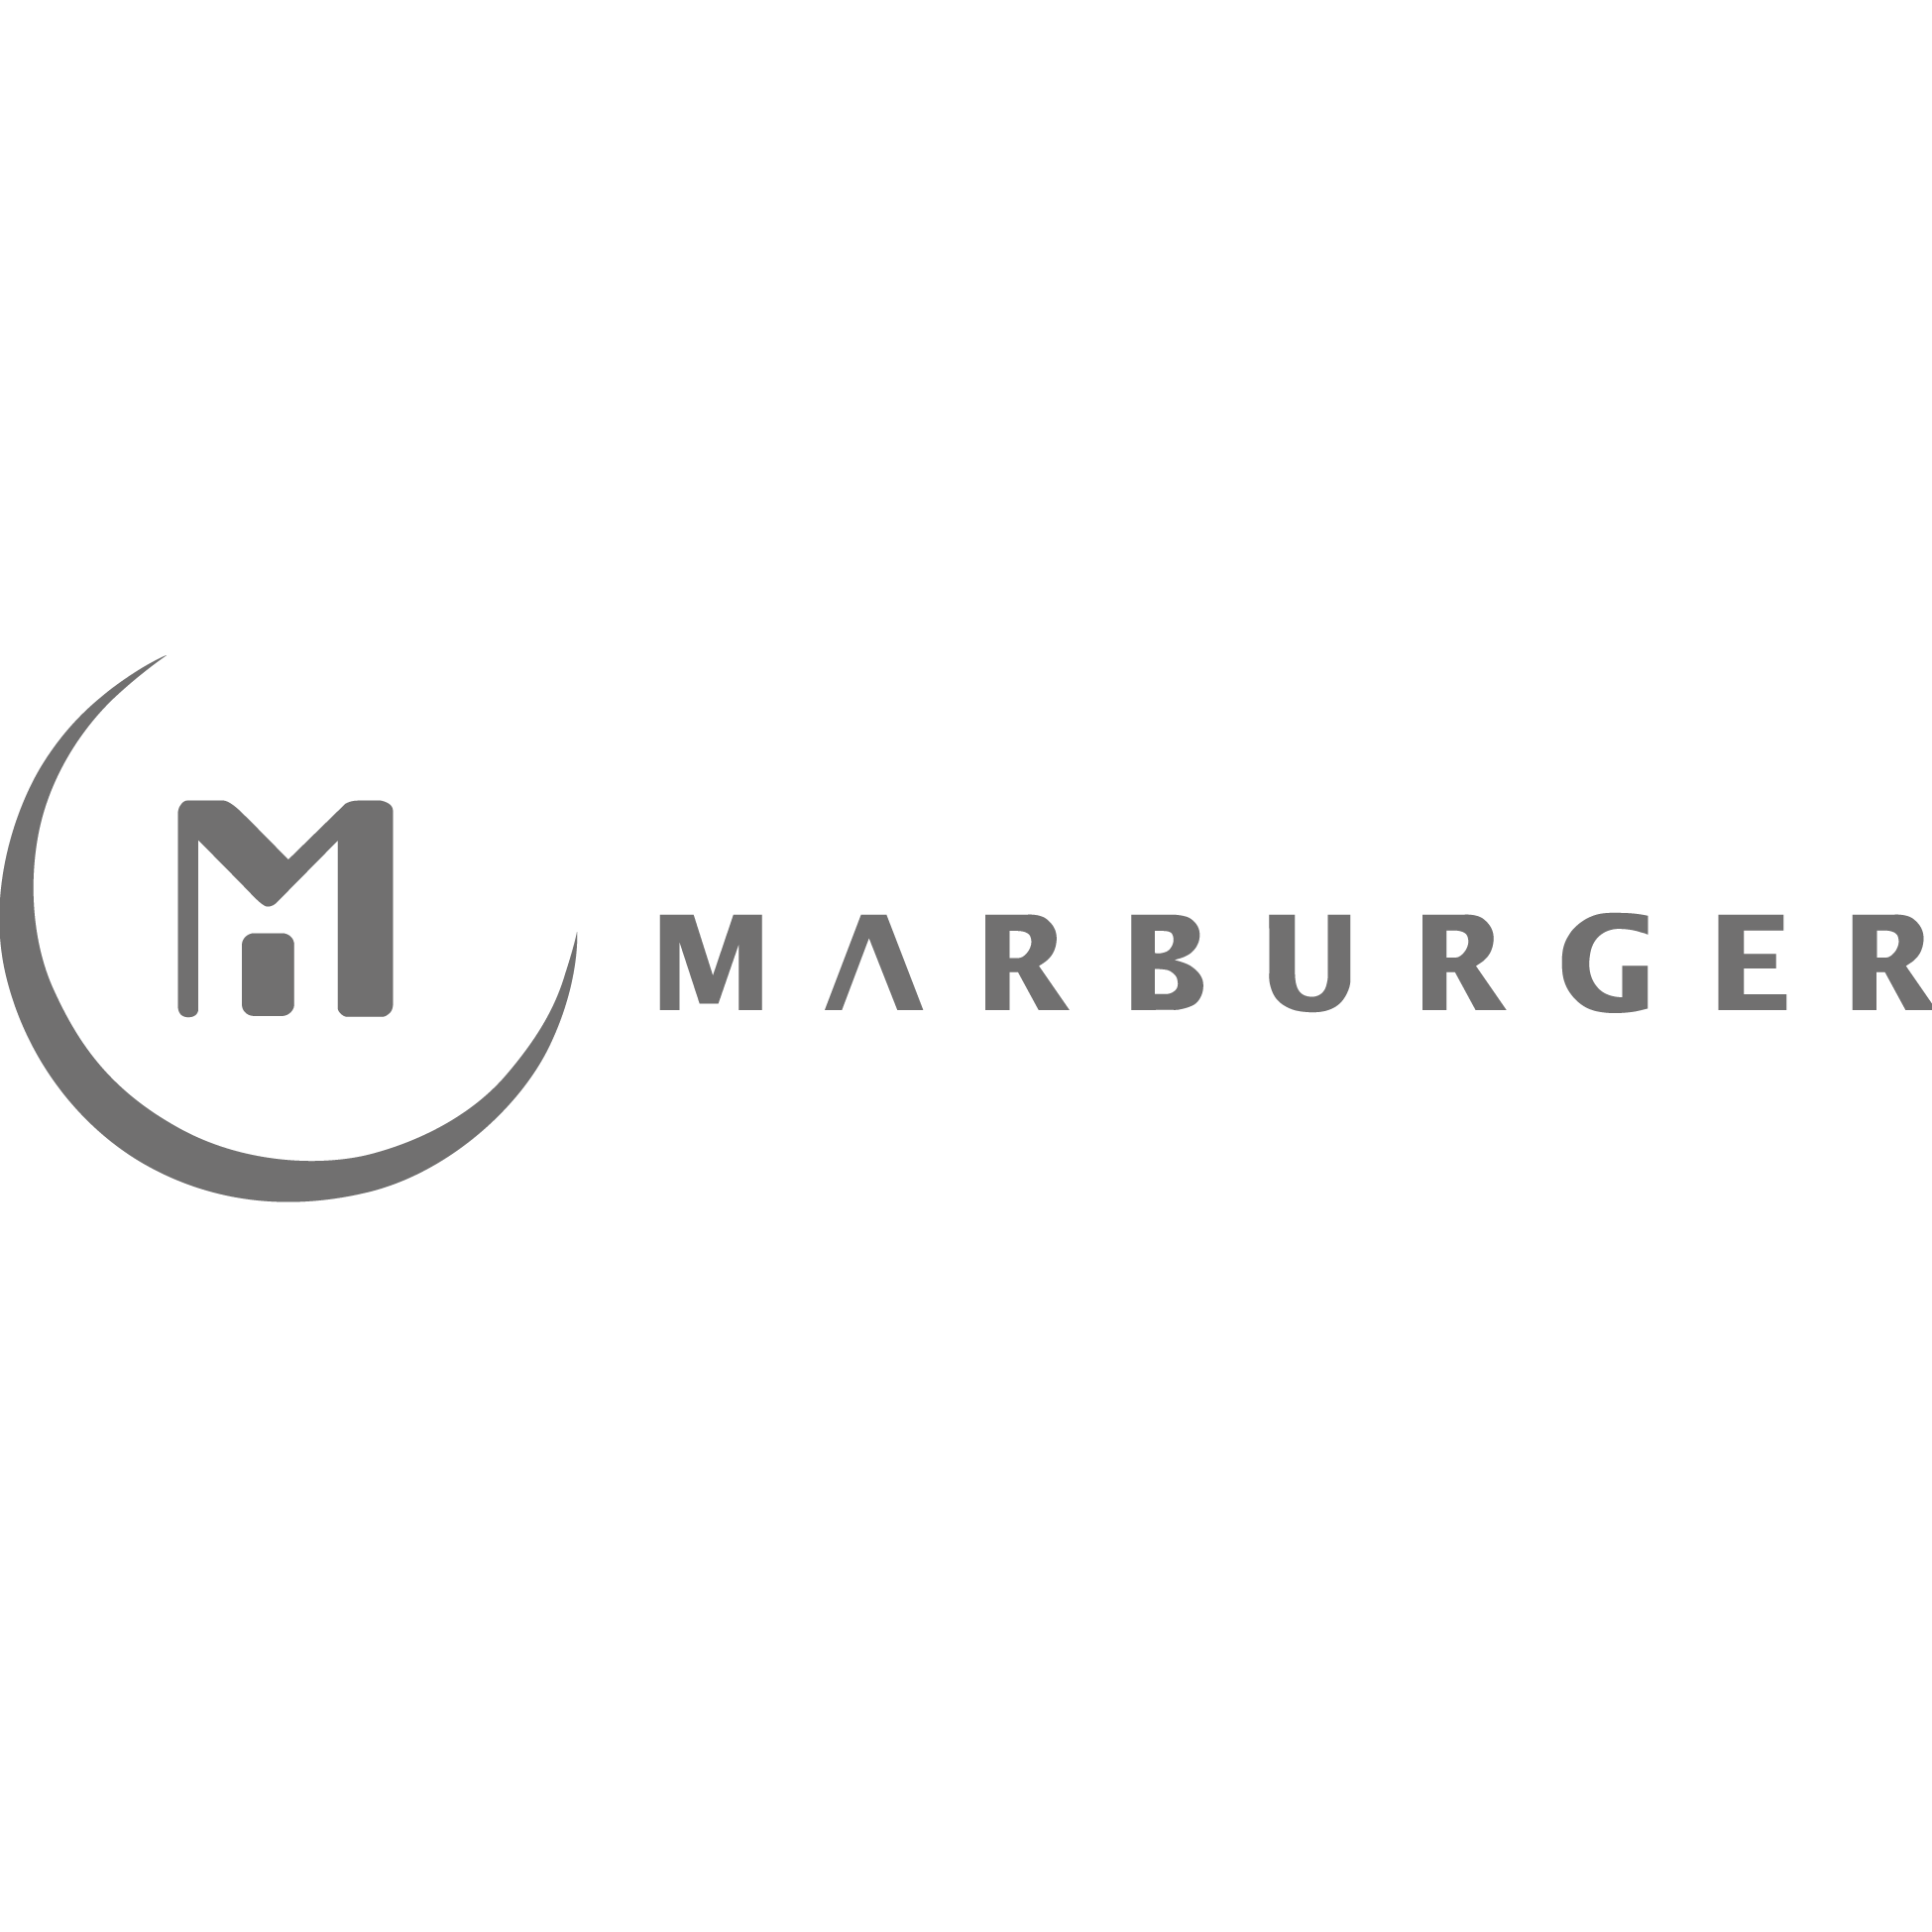 Marburger Lederwaren Knetsch GmbH & Co. KG